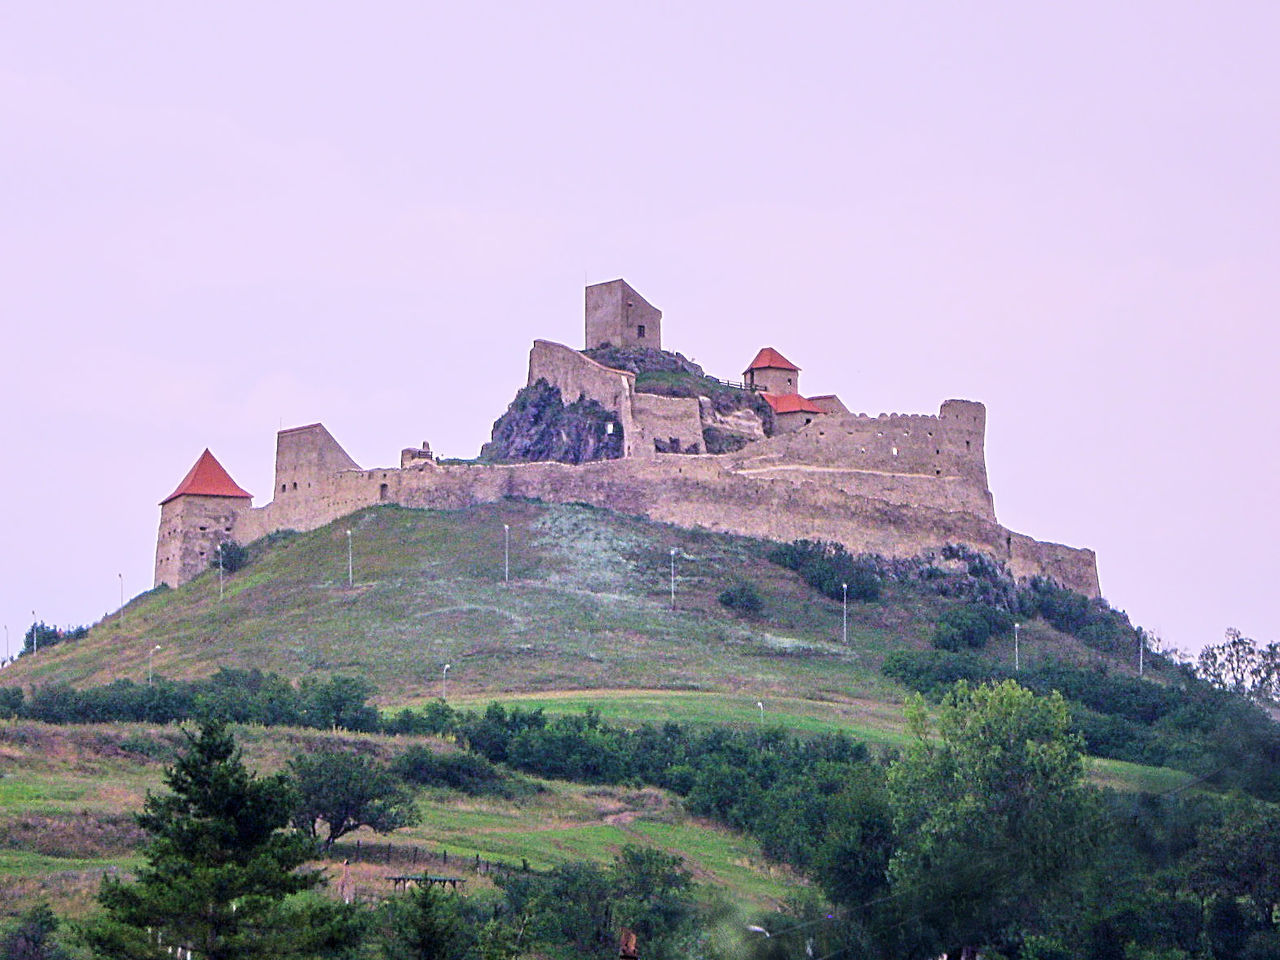 Old citadel in Transylvania, Romania - Architecture Building Exterior Built Structure Castle Cita Clear Sky Day Fortification History Low Angle View Nature No People Outdoors Rupea Castle Sky Transylvania Travel Destinations Tree